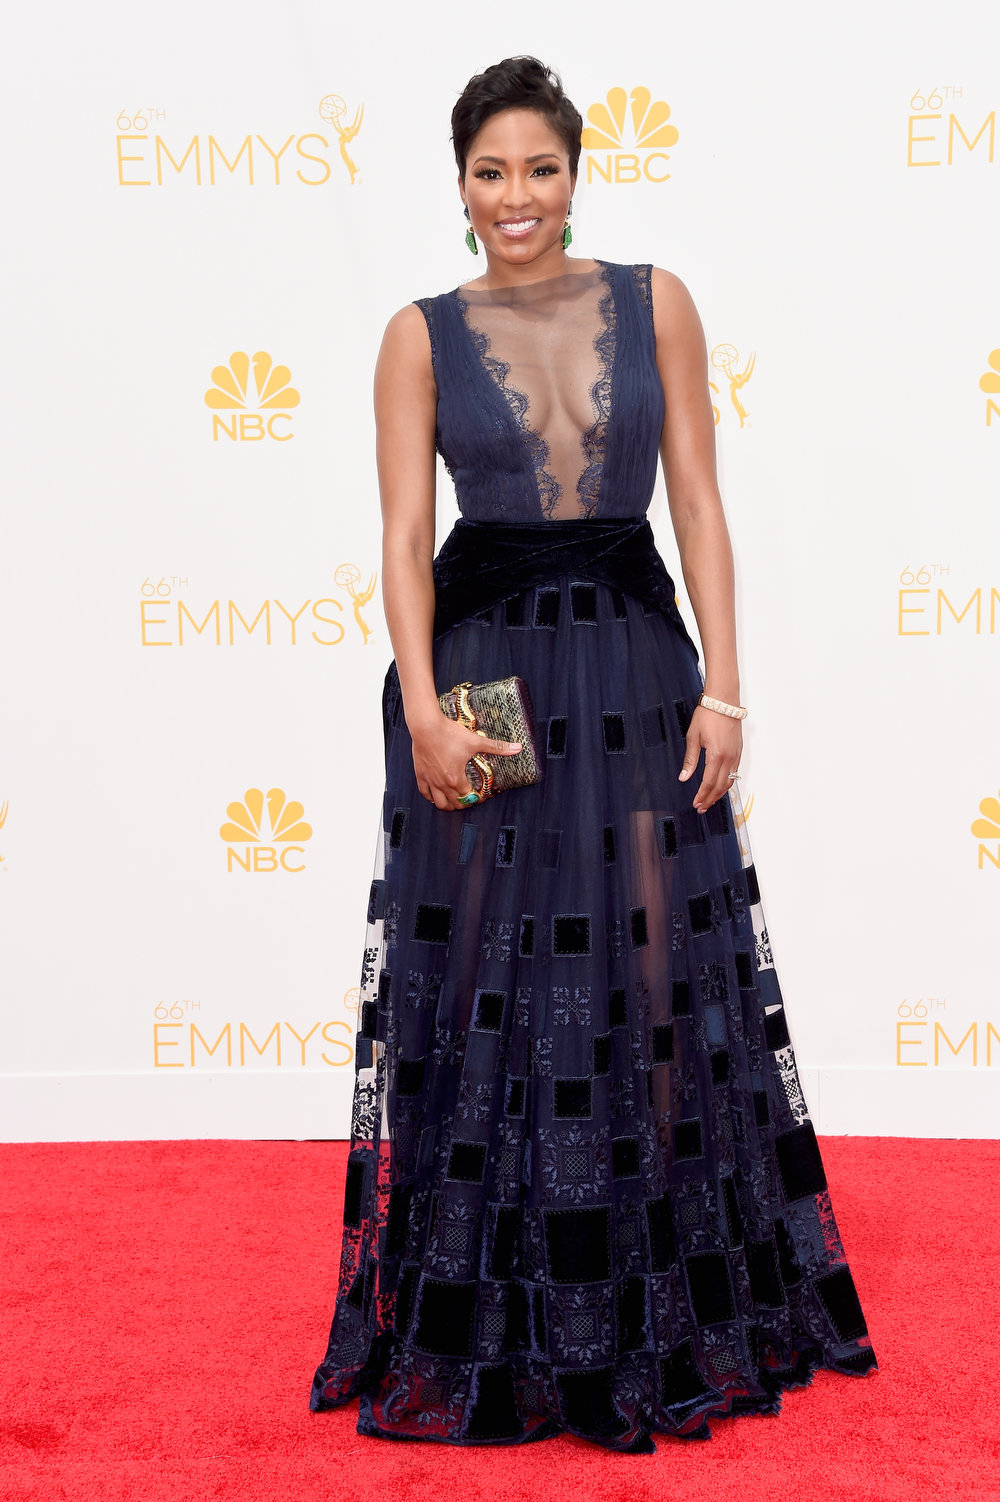 . TV reporter Alicia Quarles attends the 66th Annual Primetime Emmy Awards held at Nokia Theatre L.A. Live on August 25, 2014 in Los Angeles, California.  (Photo by Frazer Harrison/Getty Images)